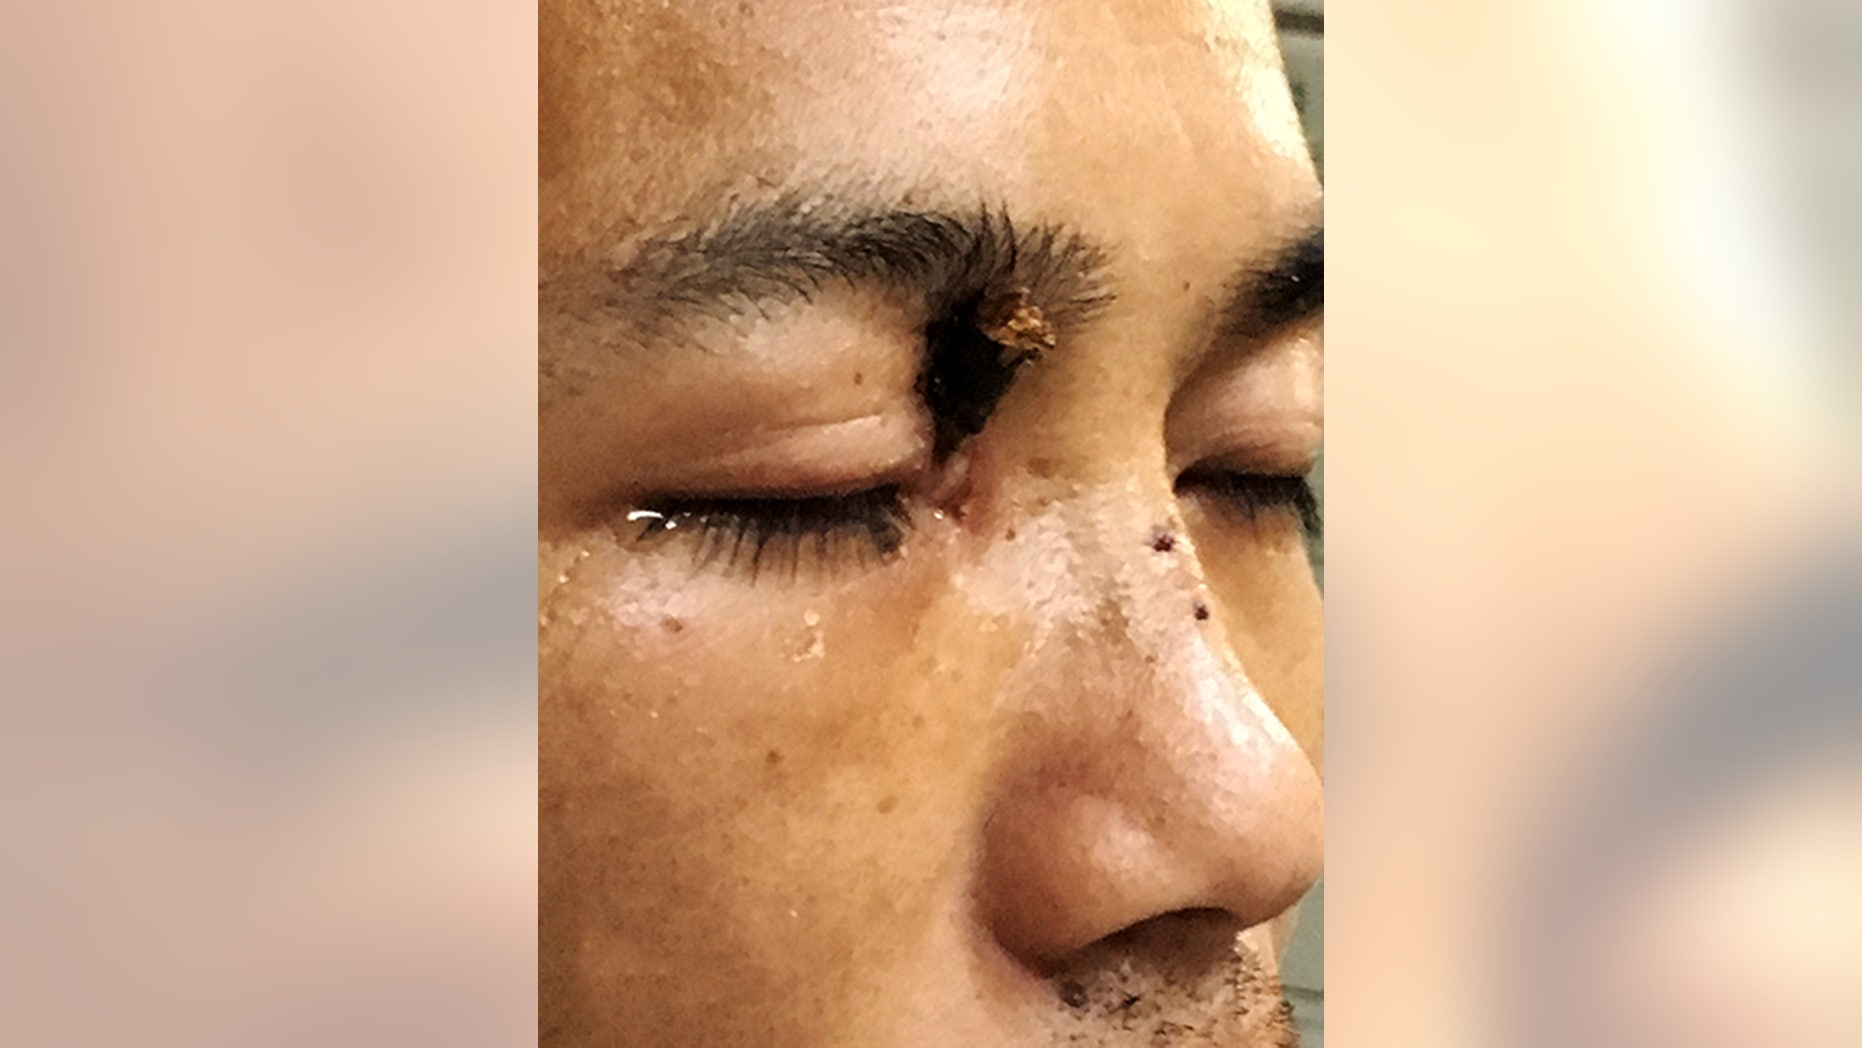 Doctors in China have pulled a 7-inch tree branch from Wu Xuan's injured right eye.